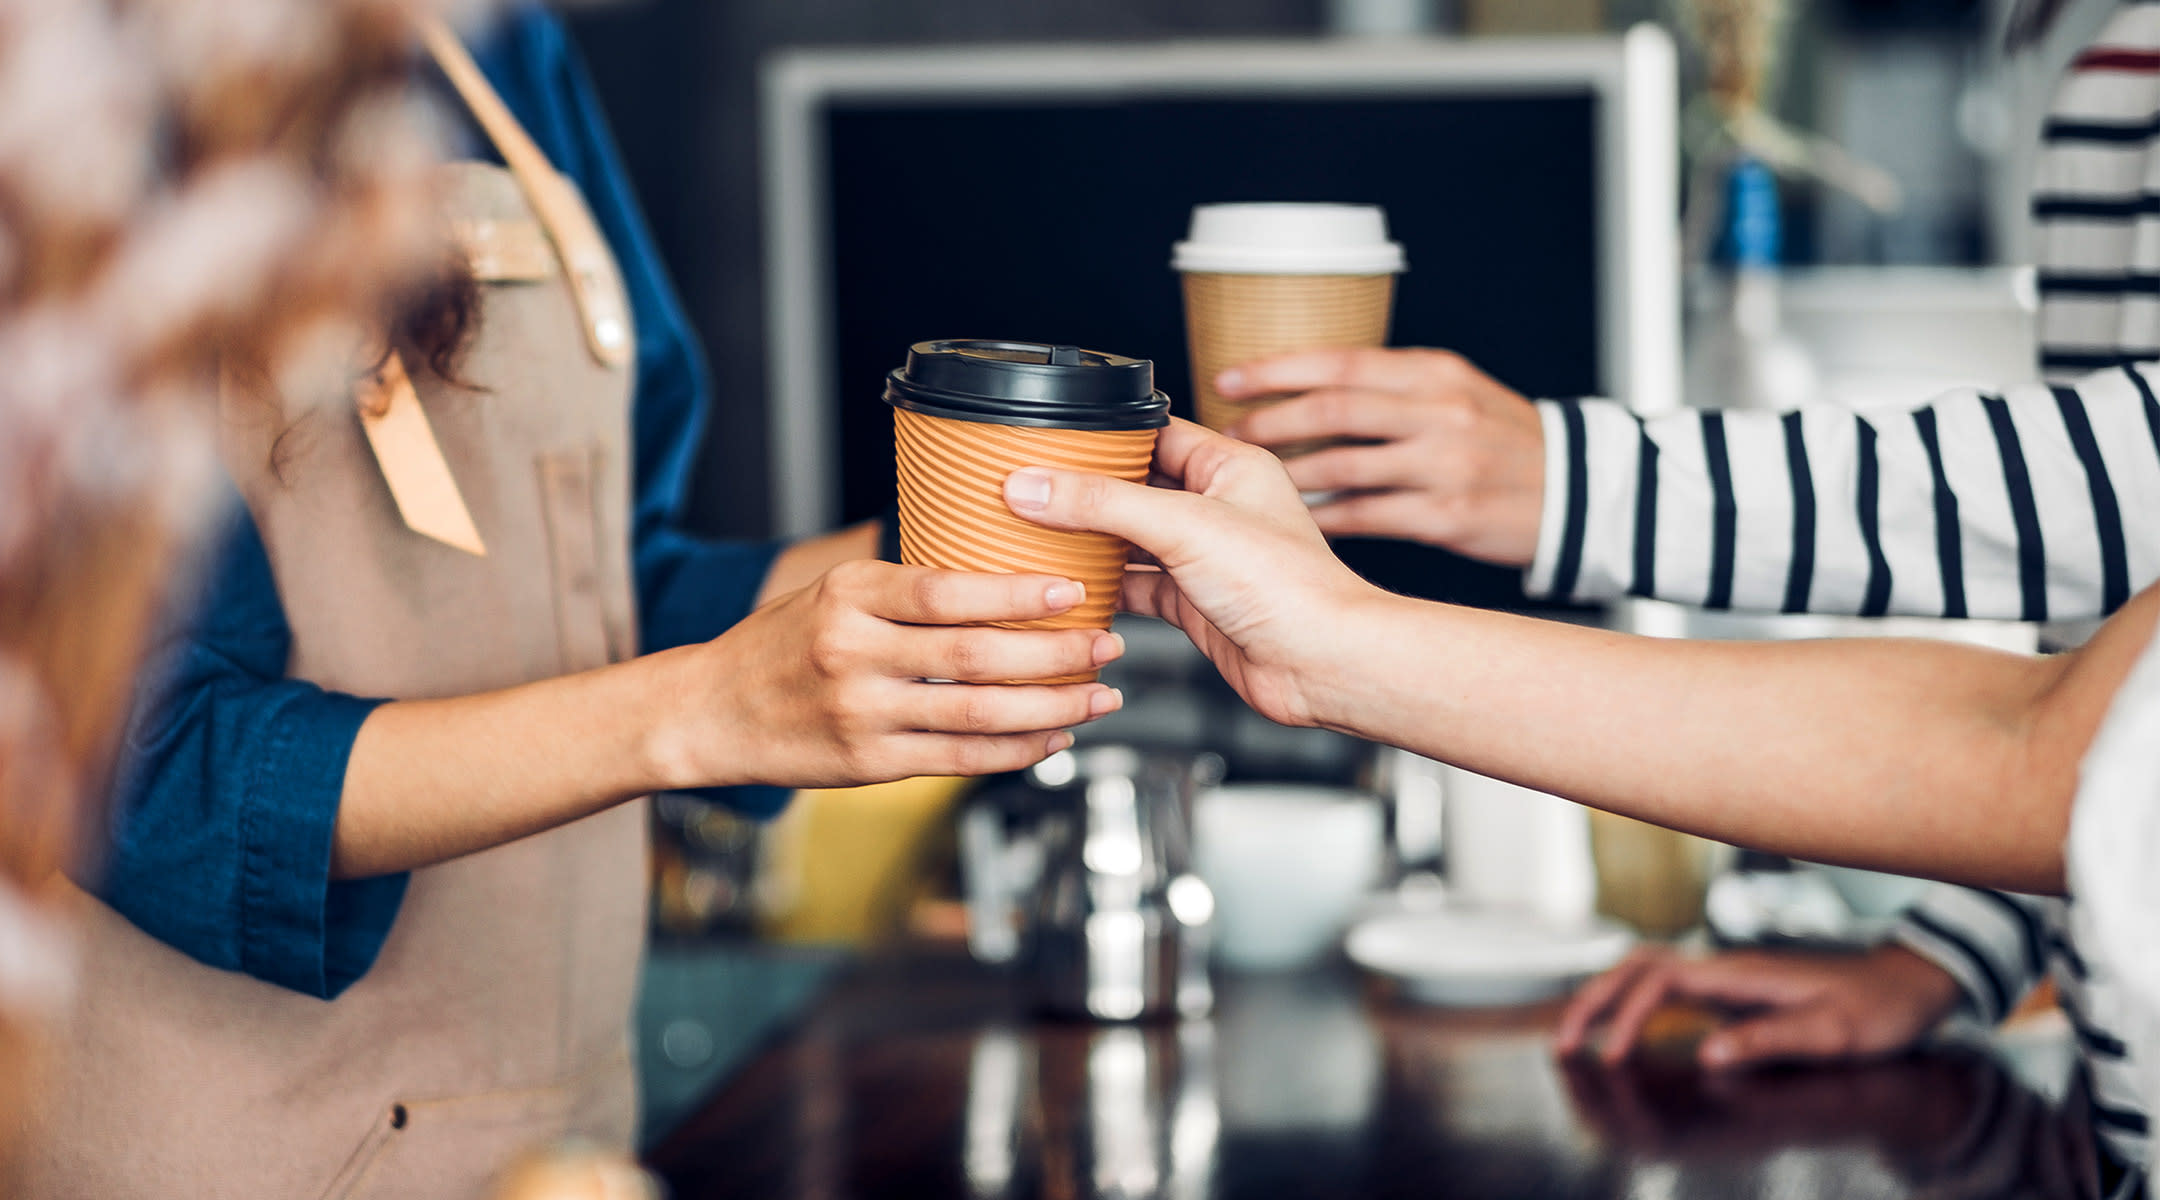 barista handing coffee to customers at coffee shop